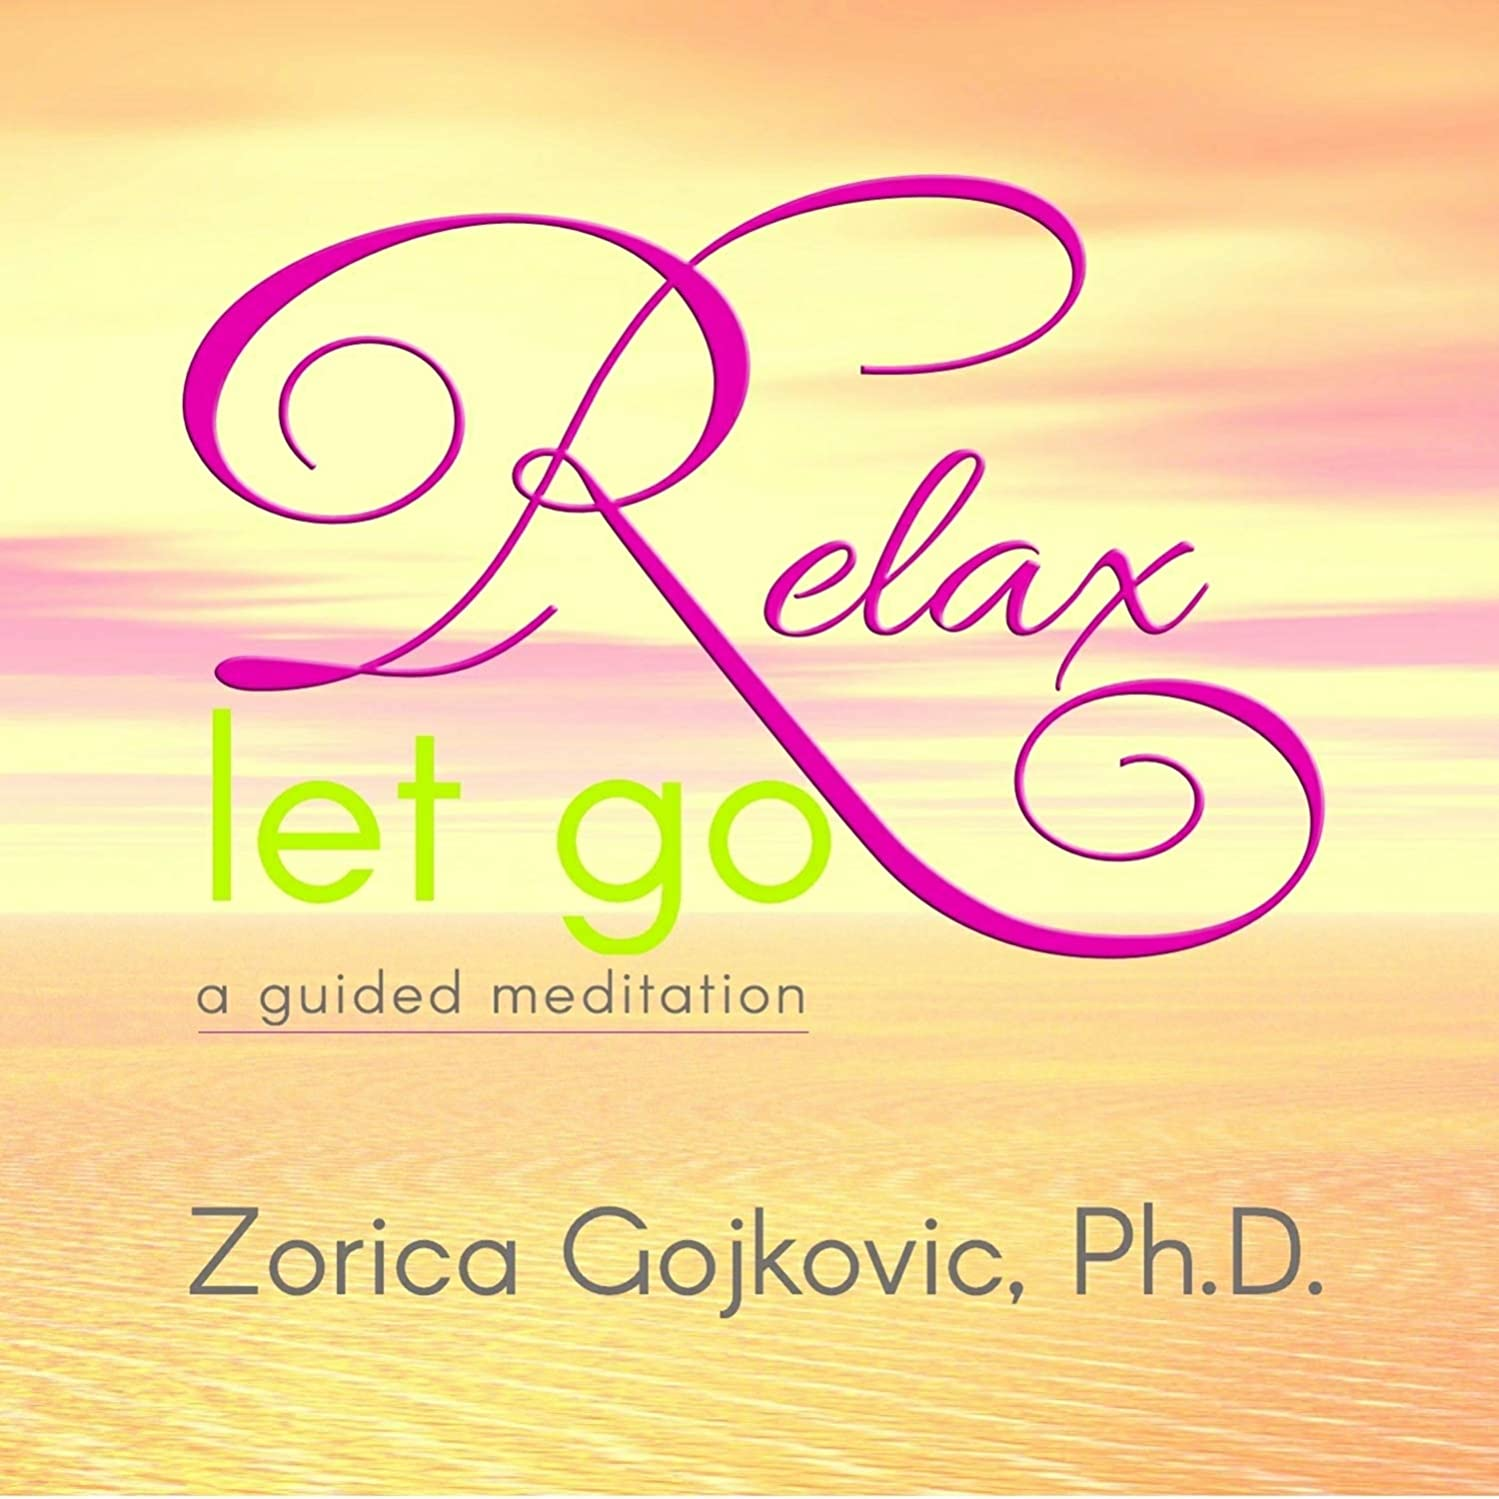 Relax, Let Go: A Guided Meditation. Release stress. Slow down your mind. Surrender worries to divine intelligence to be transformed & evolved. Enjoy ecstatic peace. Come back to your divine center.